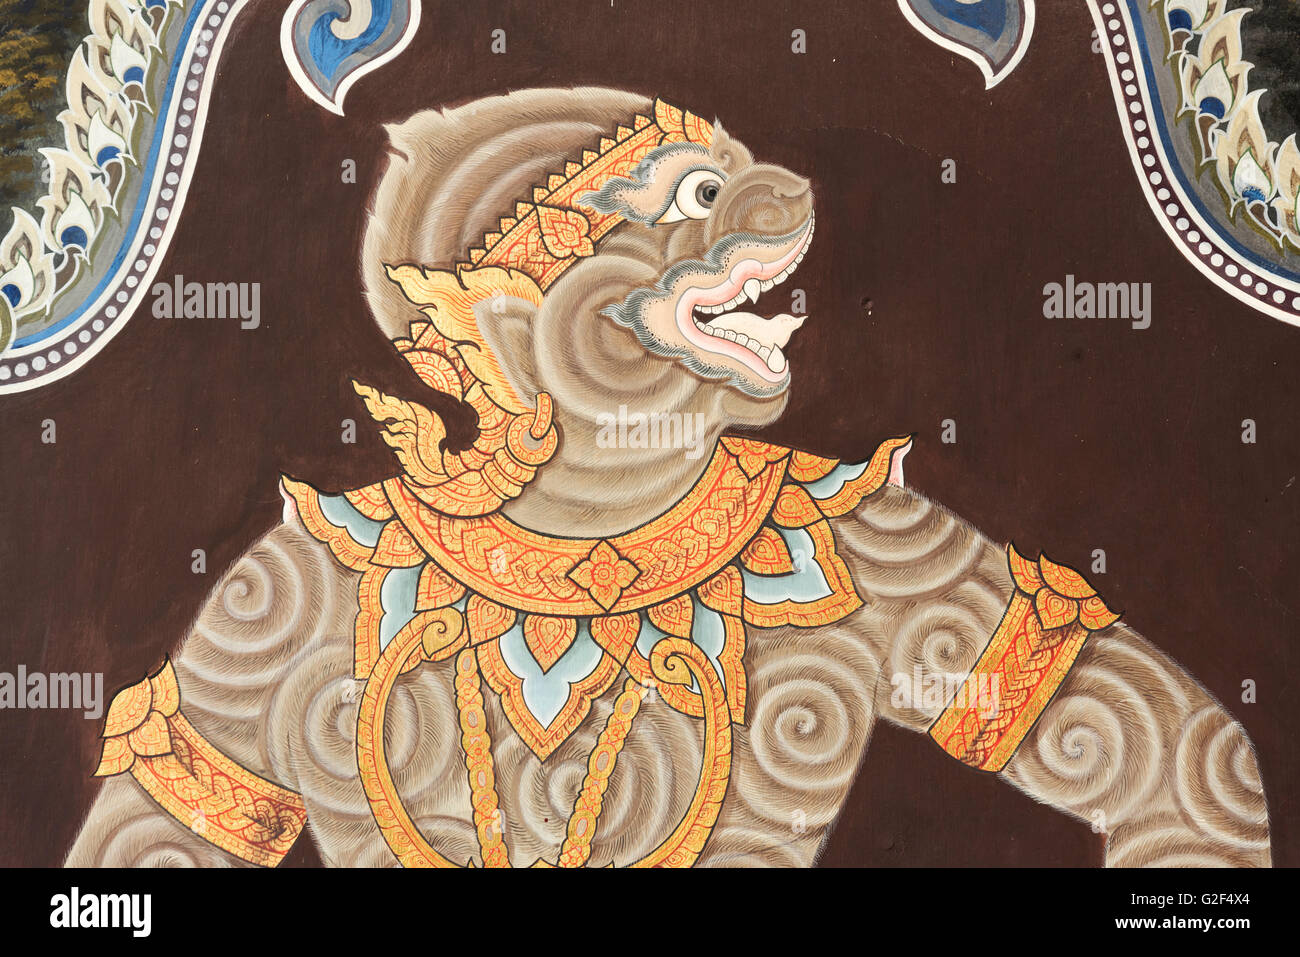 mural of hanuman the monkey god at a temple showing that rama and